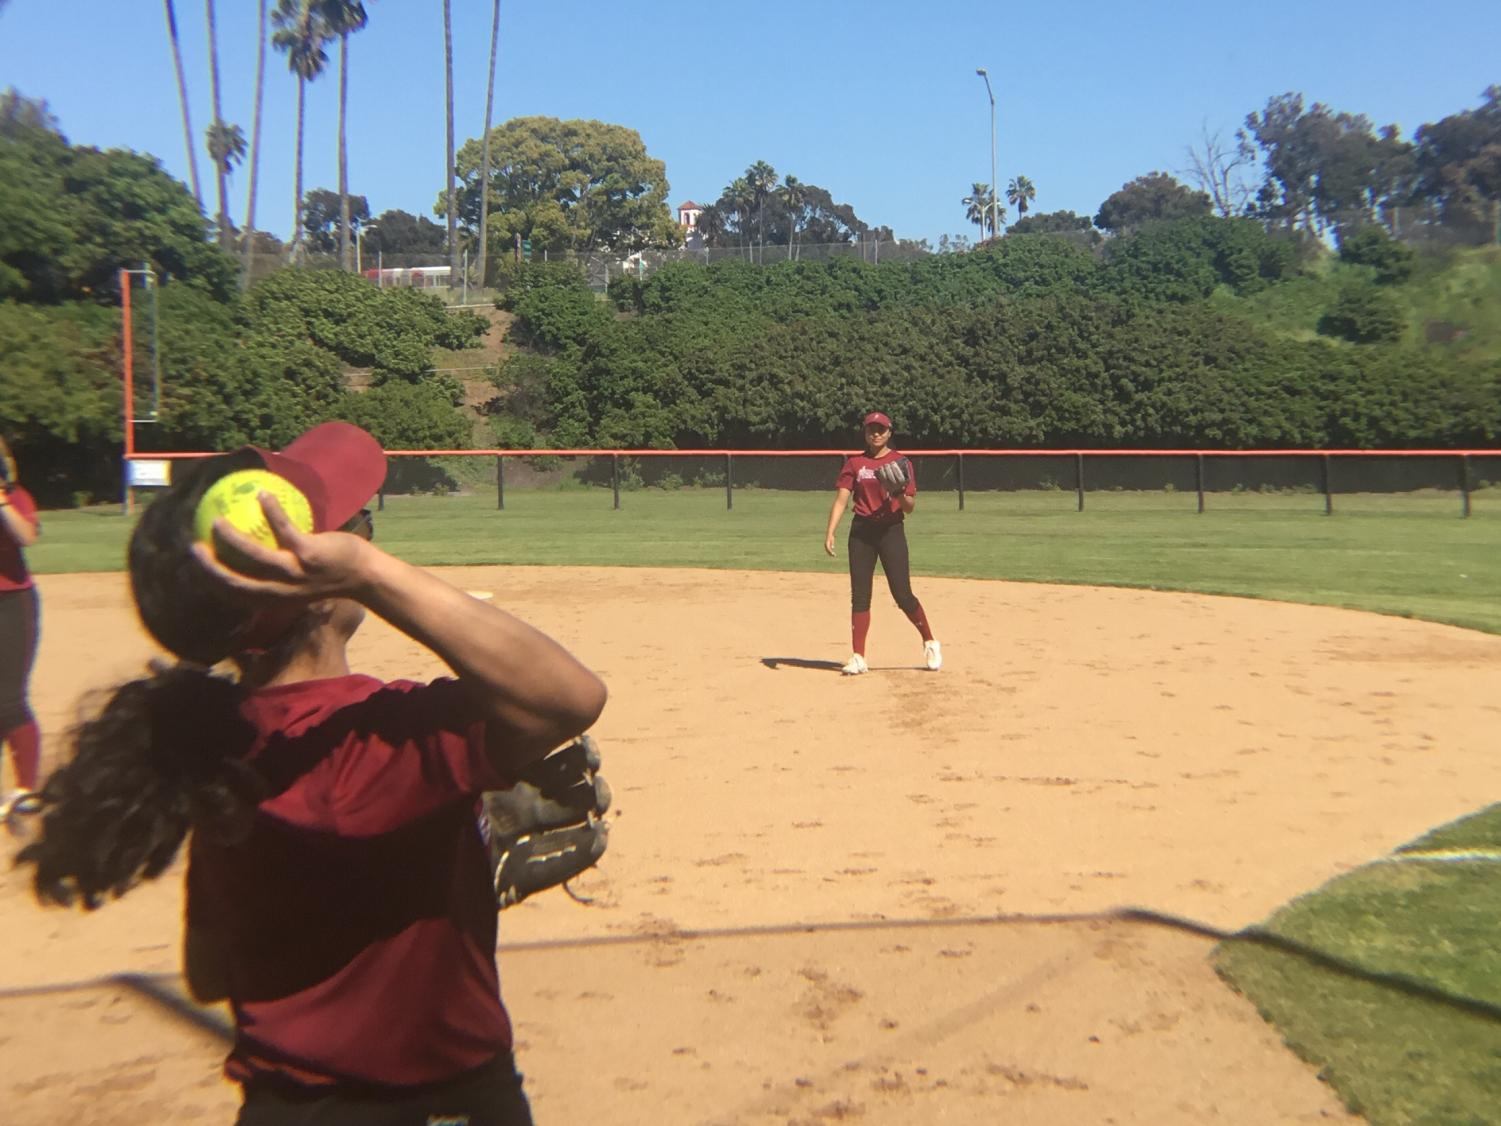 Vanessa Tirado (foreground) and Zoe Manjarrez at practice ahead of their game against Ventura. By Sonny Garibay/City Times